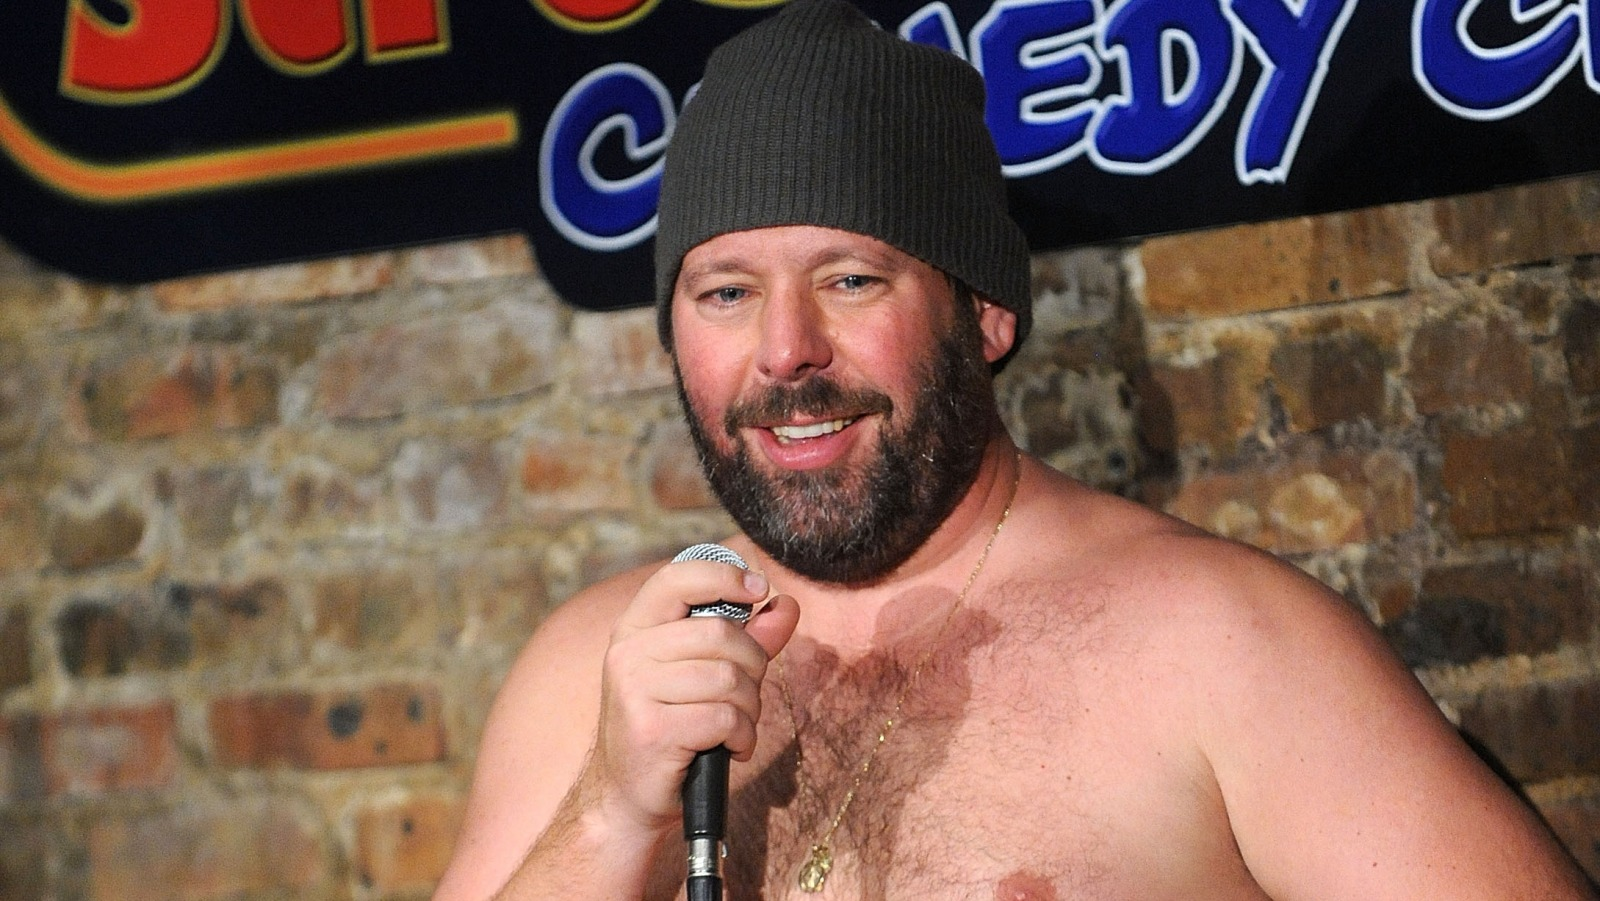 The Untold Truth Of Bert Kreischer People viewing leeann kreischer's profile are typically female, of an average age of 33, speak english, from united kingdom, most. the untold truth of bert kreischer